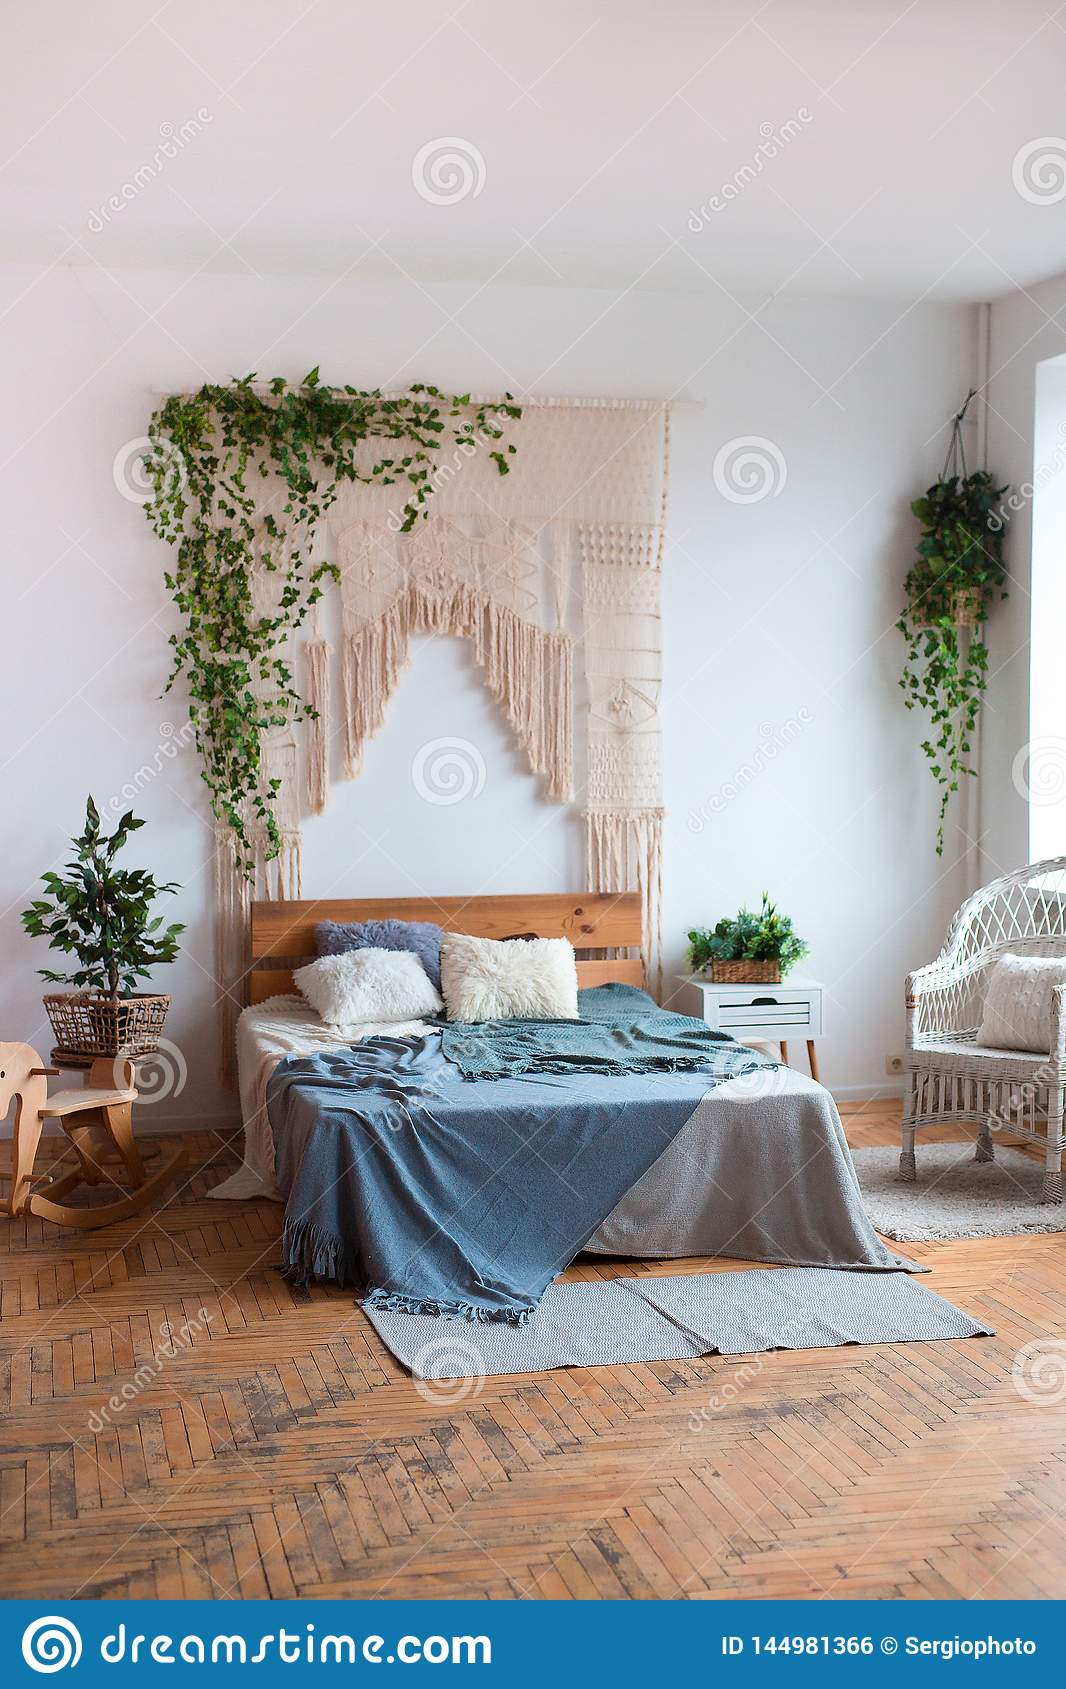 Cozy Interior Design Of Modern Studio Apartment In Scandinavian Style A Spacious Huge Room In Light Colors With Wooden Stock Photo Image Of Home Lamp 144981366